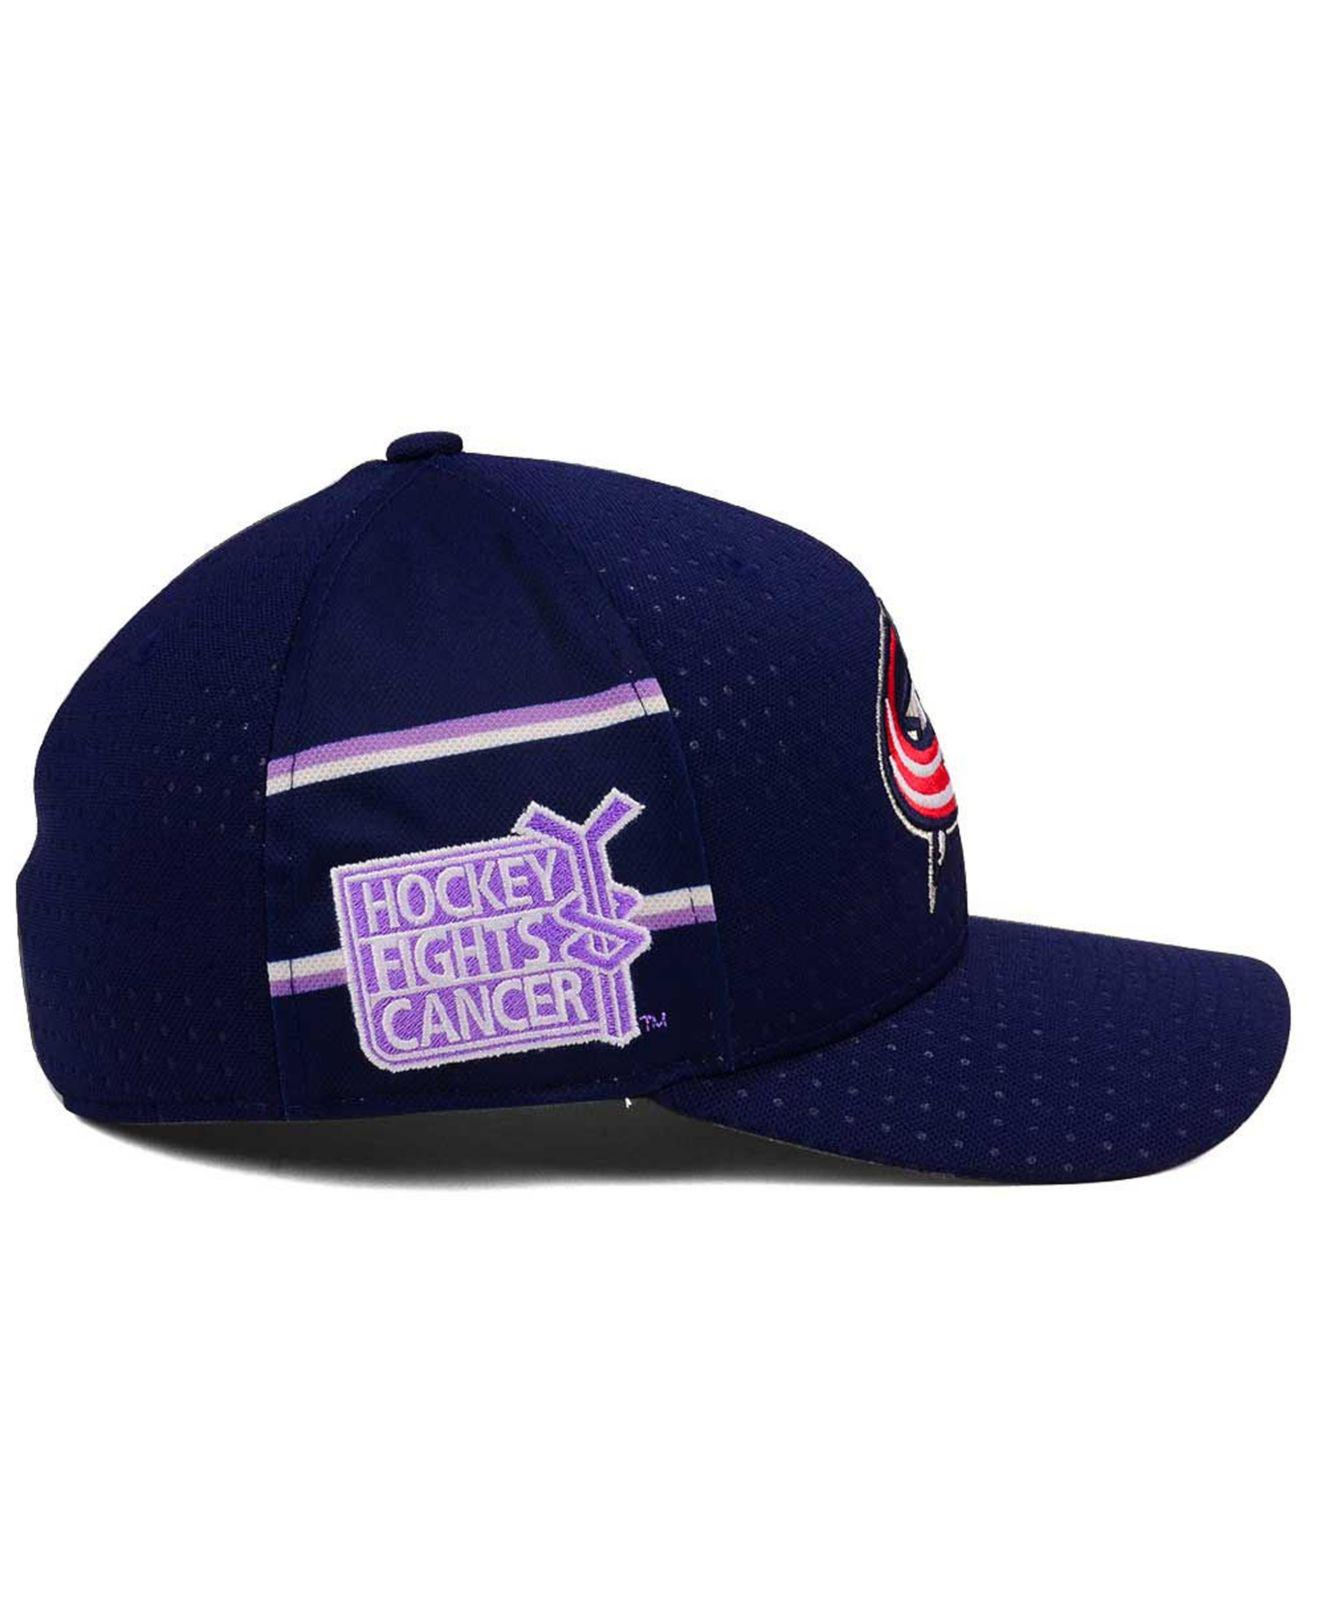 e8f77d981a1 Lyst - adidas Hockey Fights Cancer Stretch Cap in Blue for Men